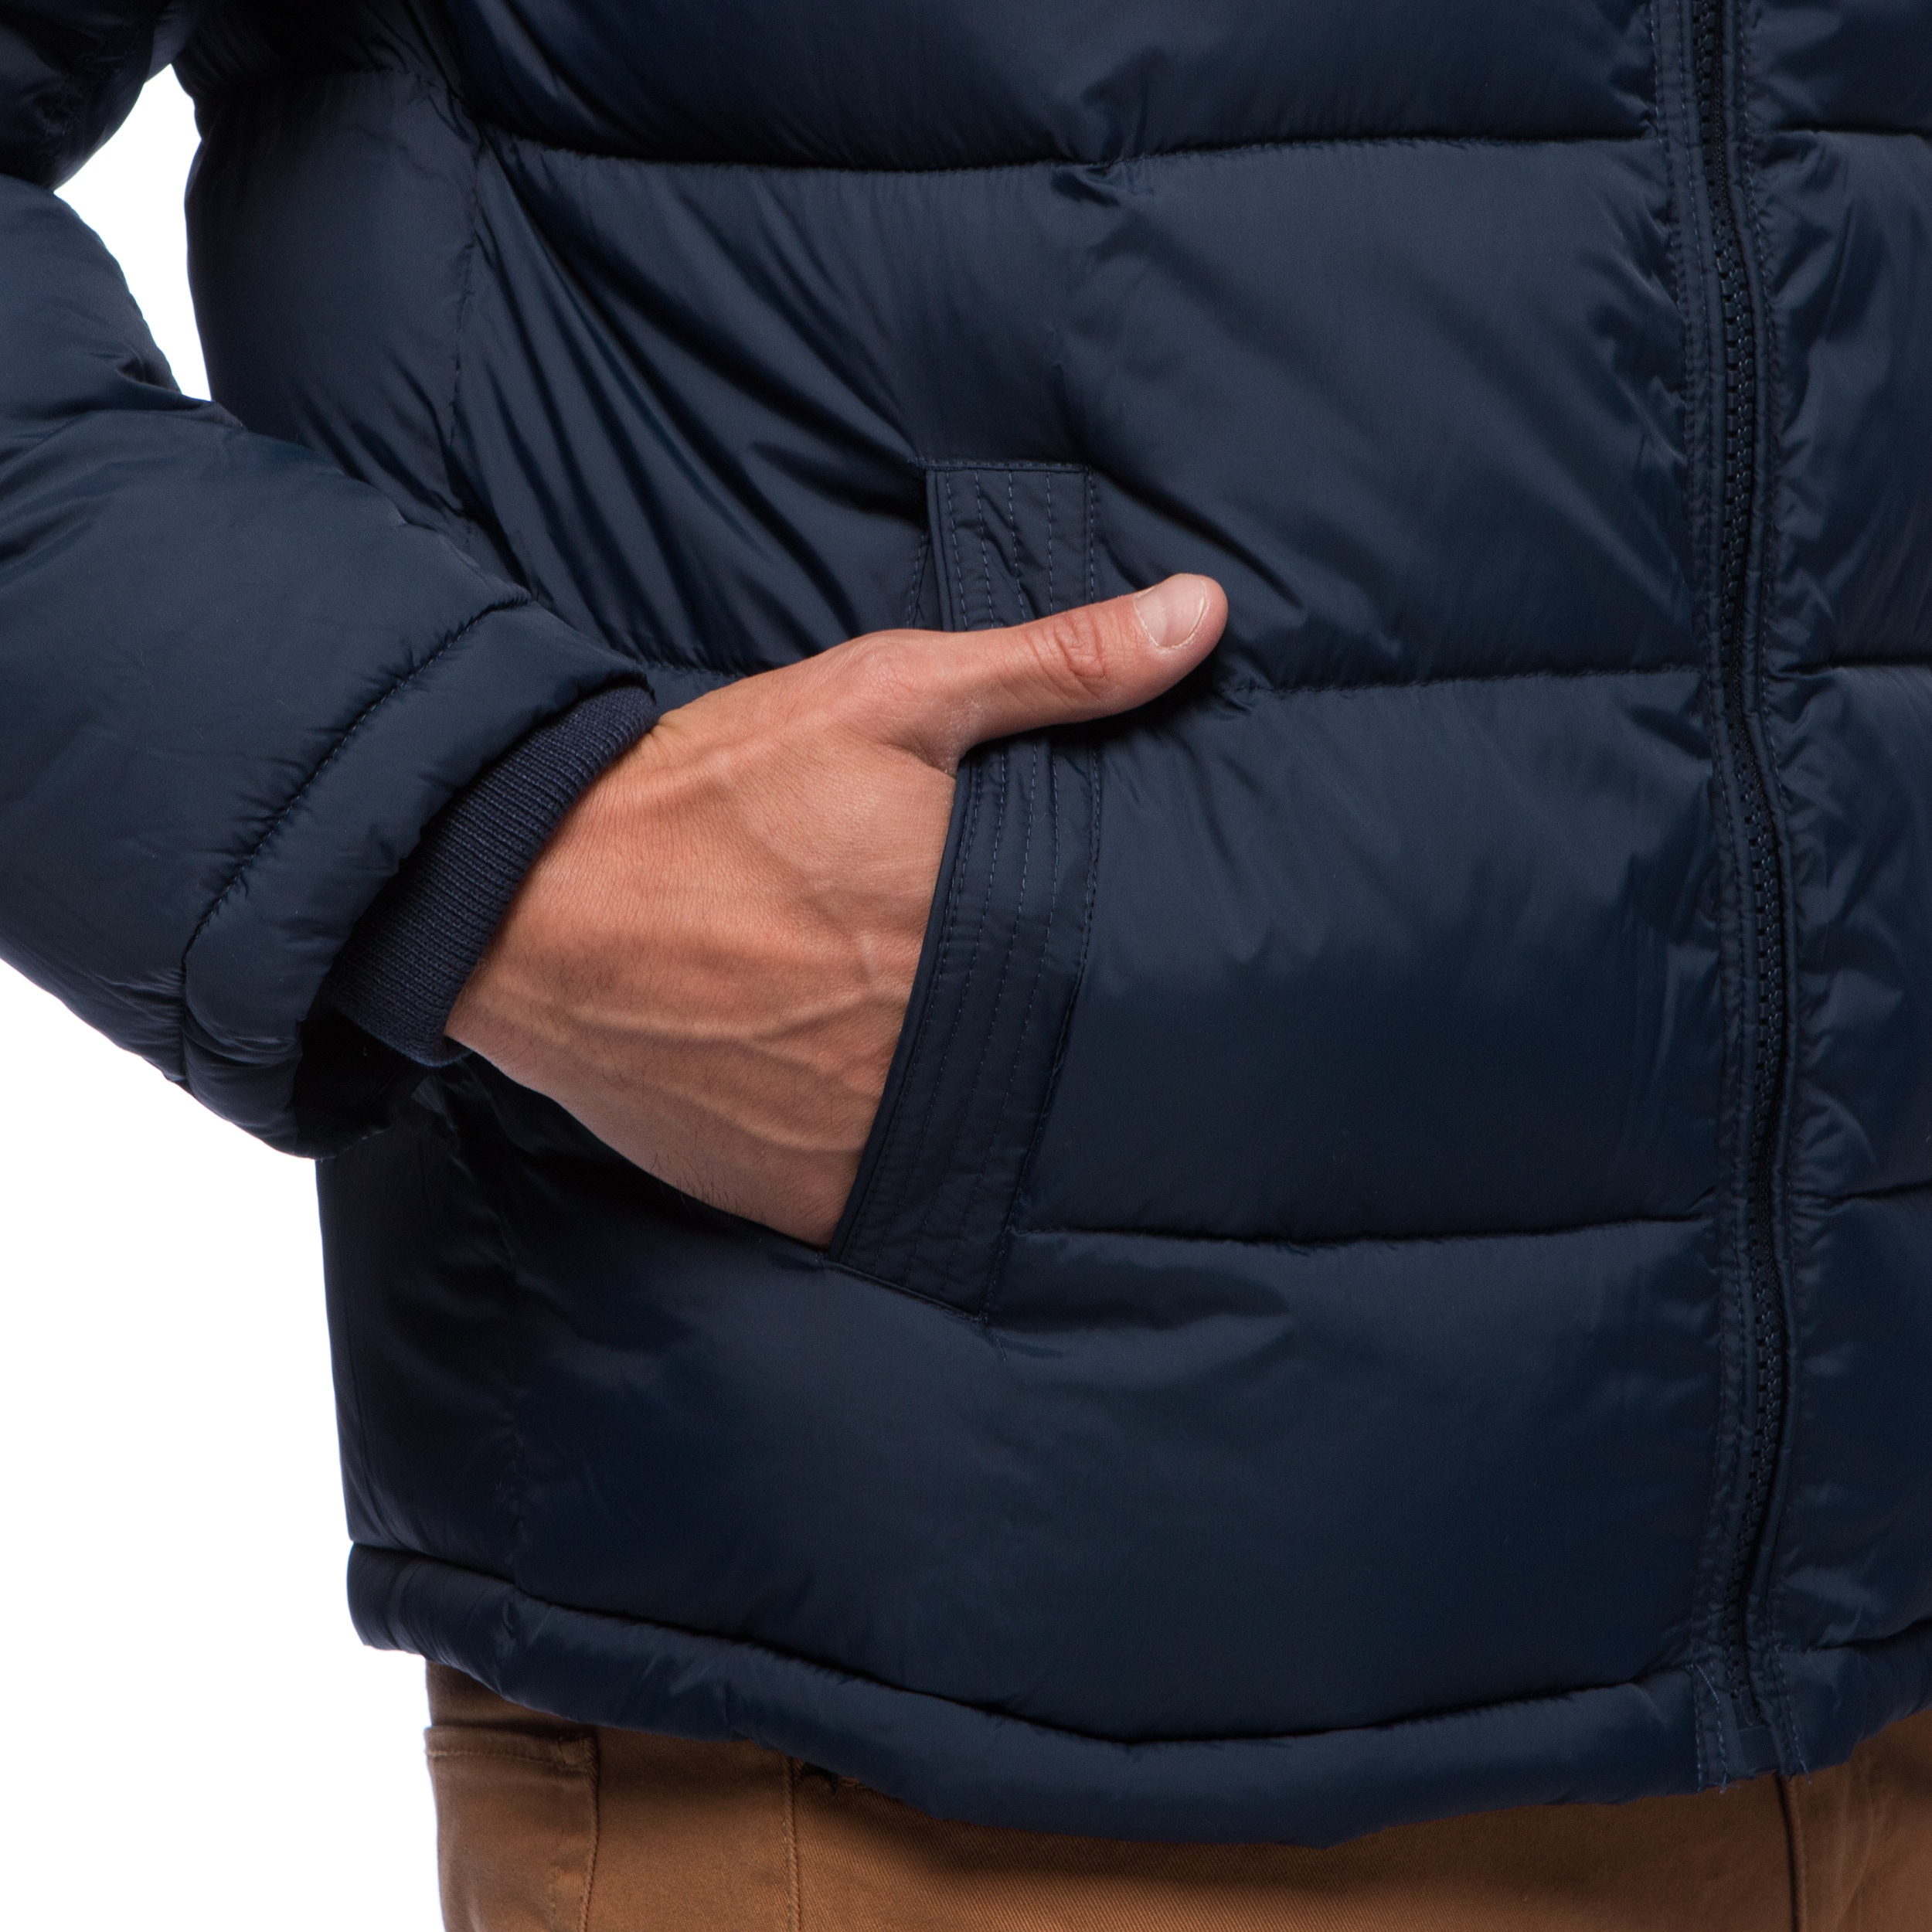 How to Buy Men's Winter Apparel on Clearance